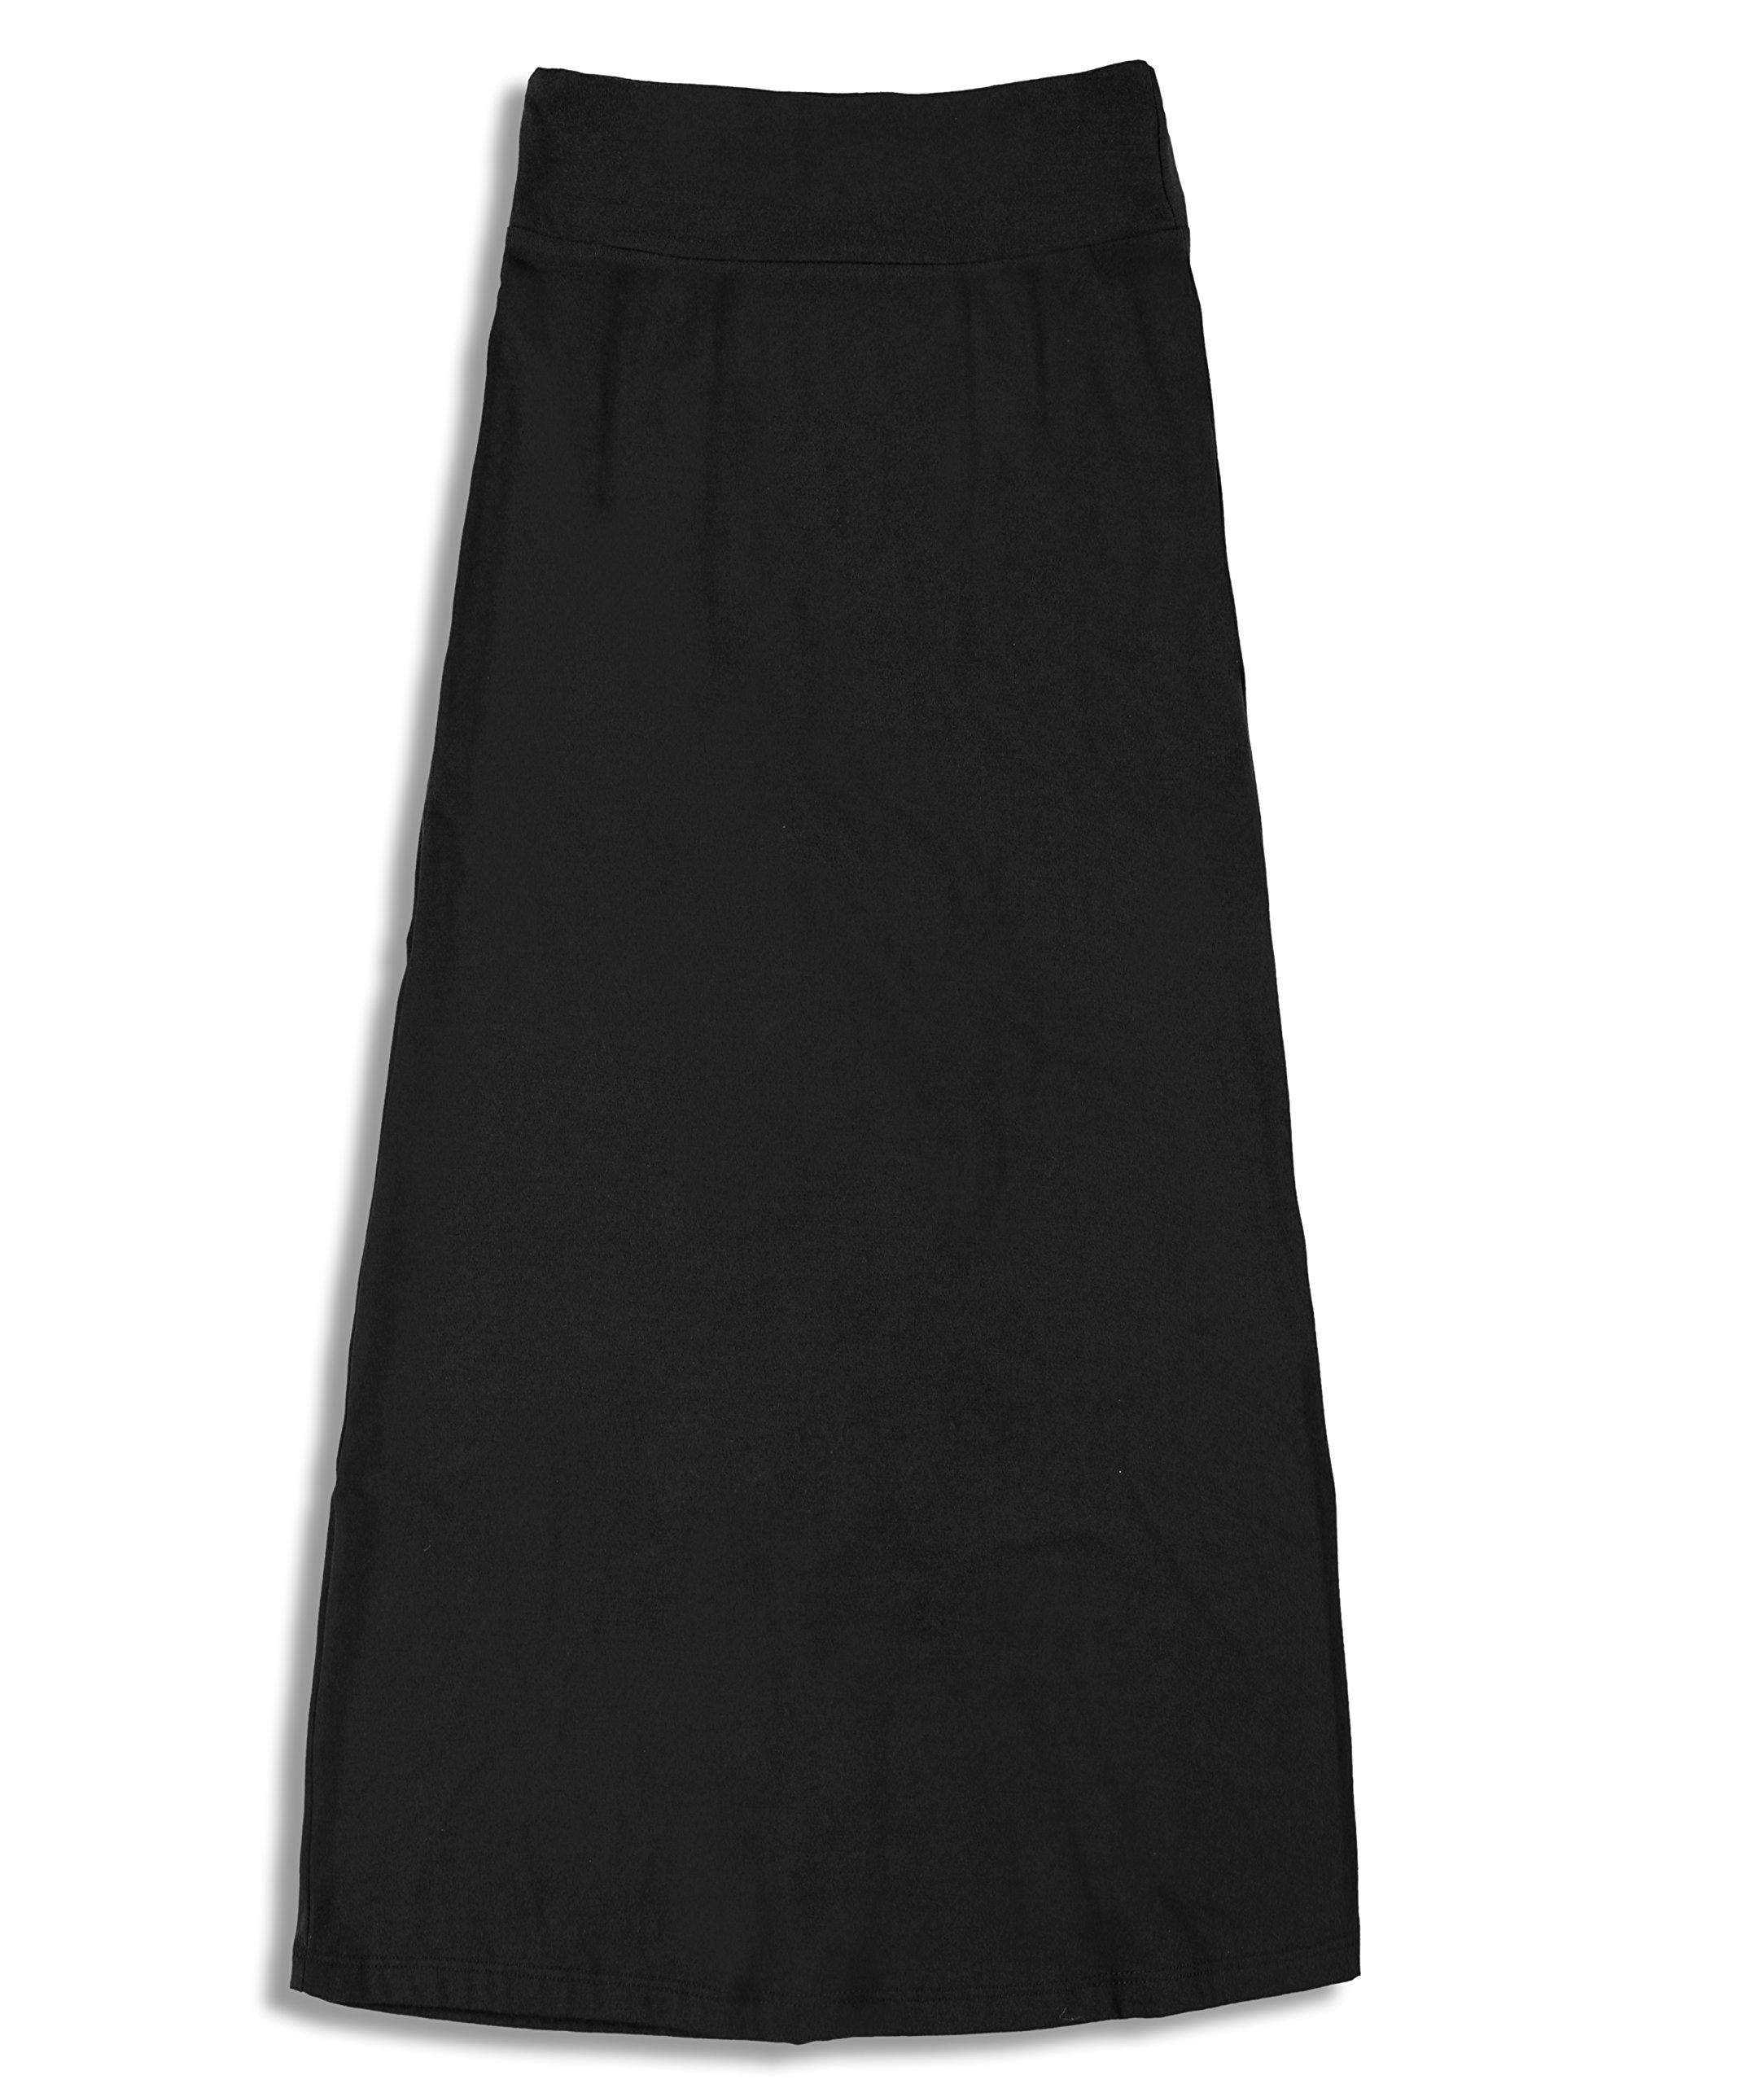 Free to Live Girls 7-16 Maxi Skirts - Great for Uniform (Small, Black)